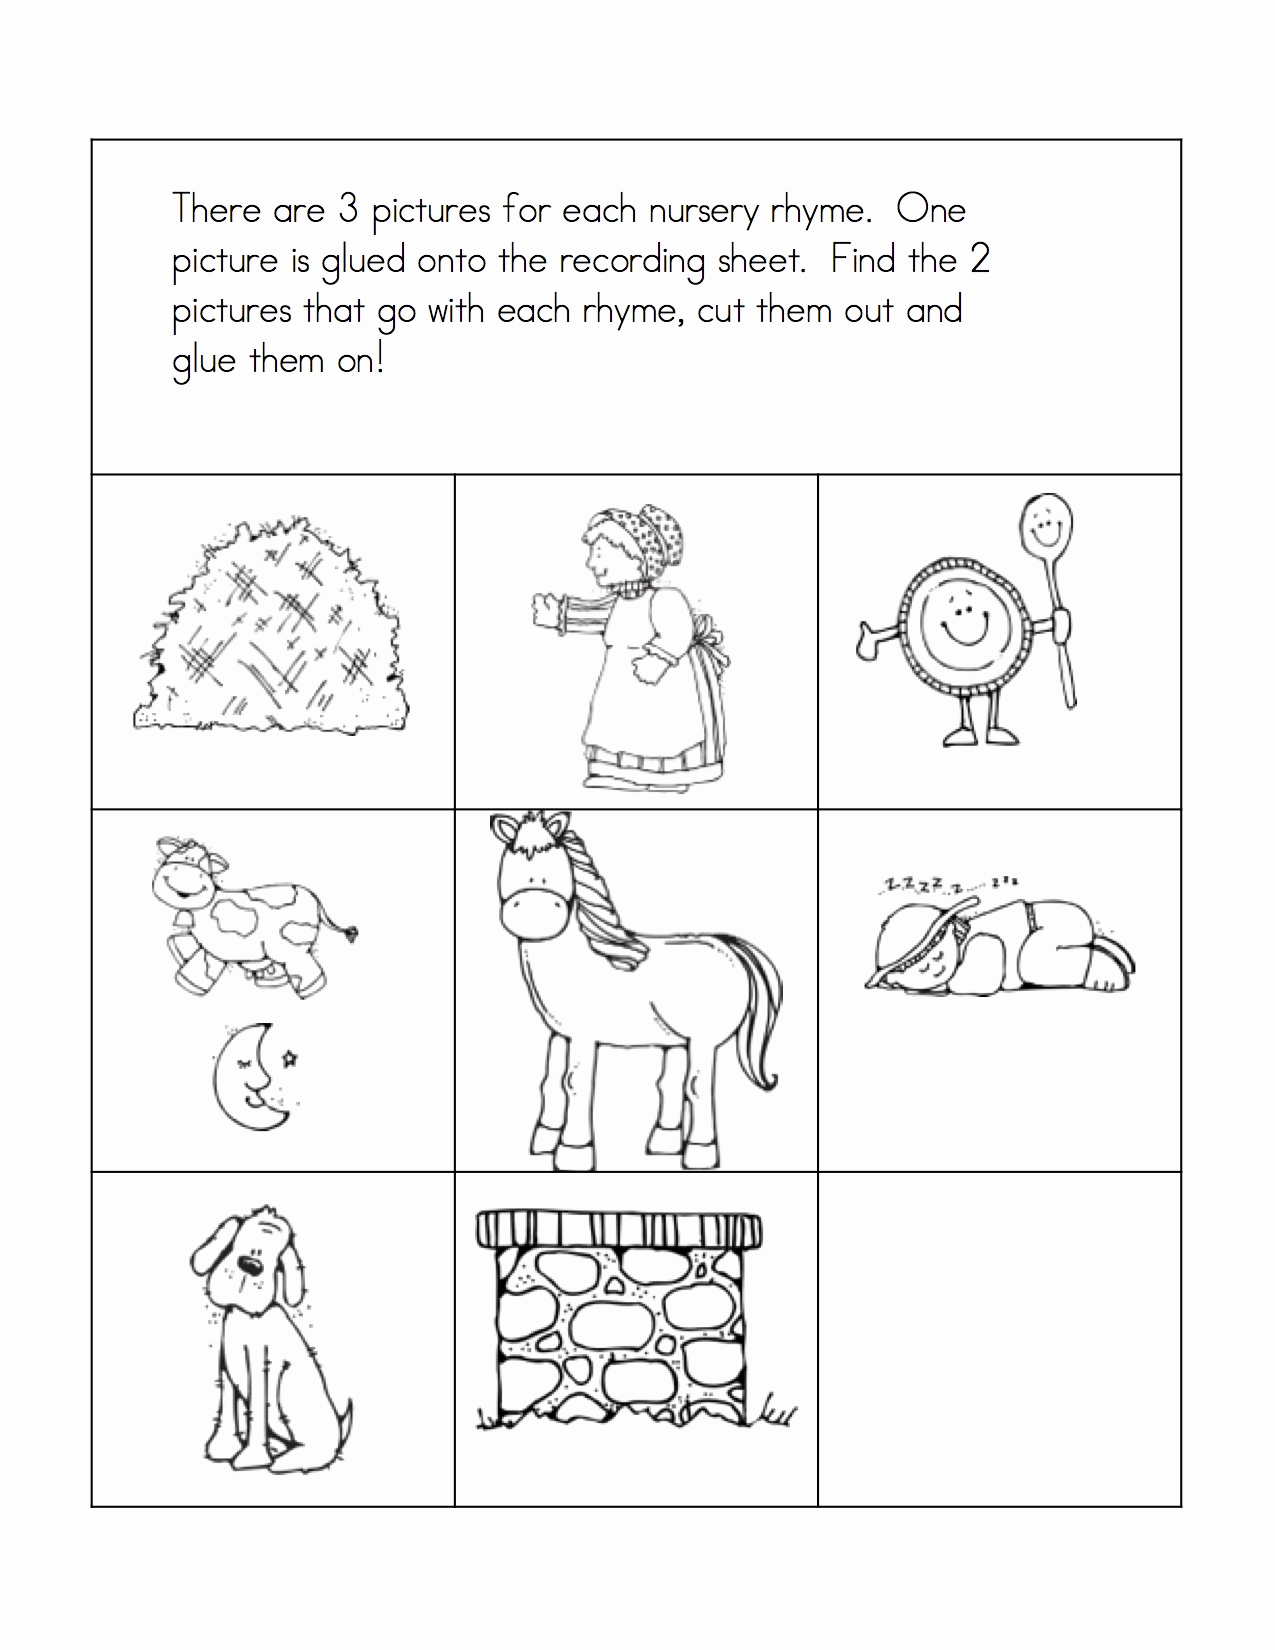 Rhyming Worksheets for Preschoolers Awesome Preschool Rhyming Worksheets